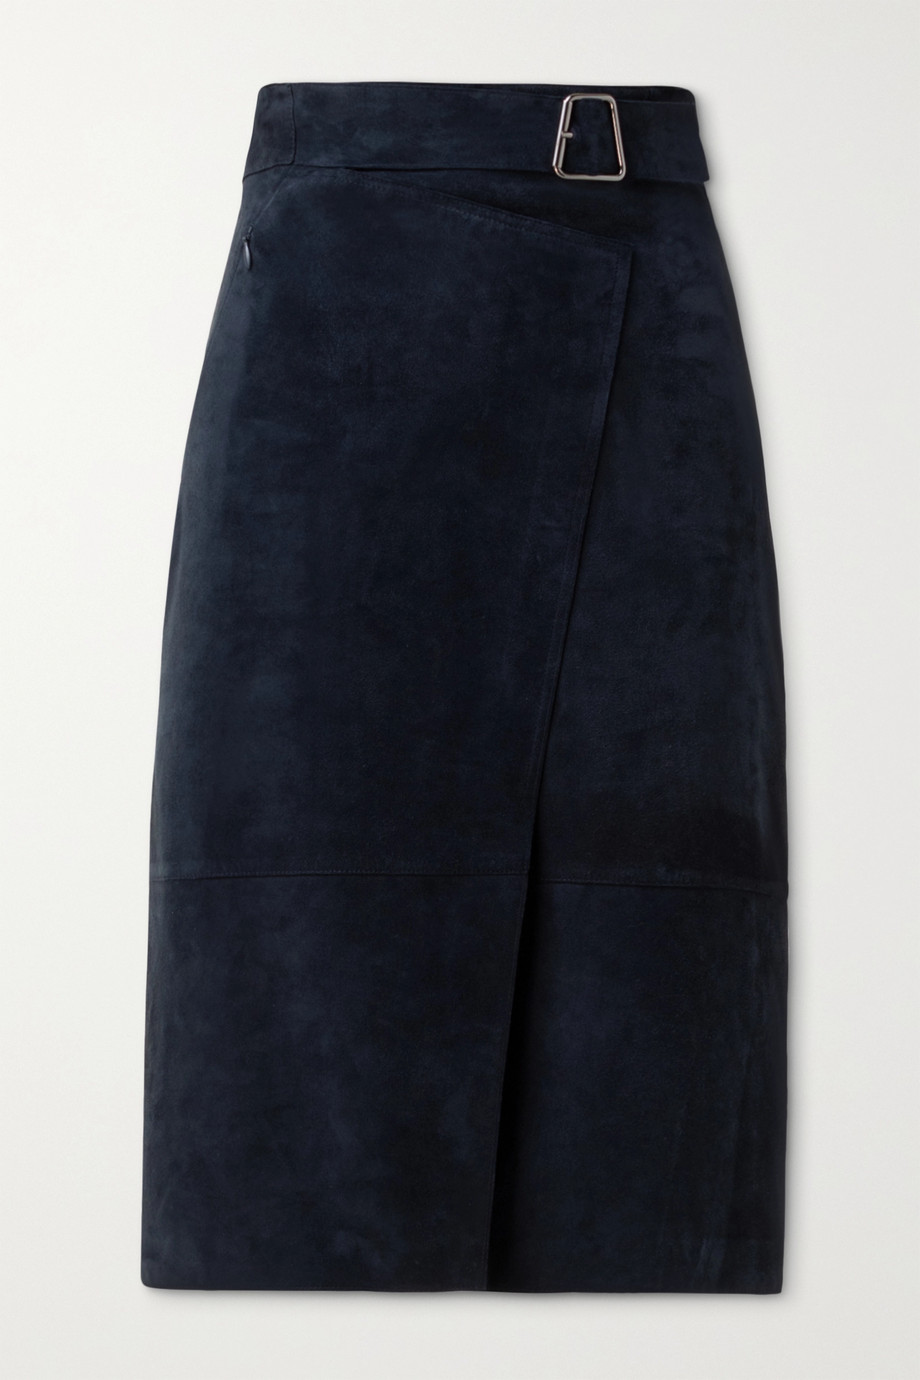 Akris Suede belted wrap-effect skirt